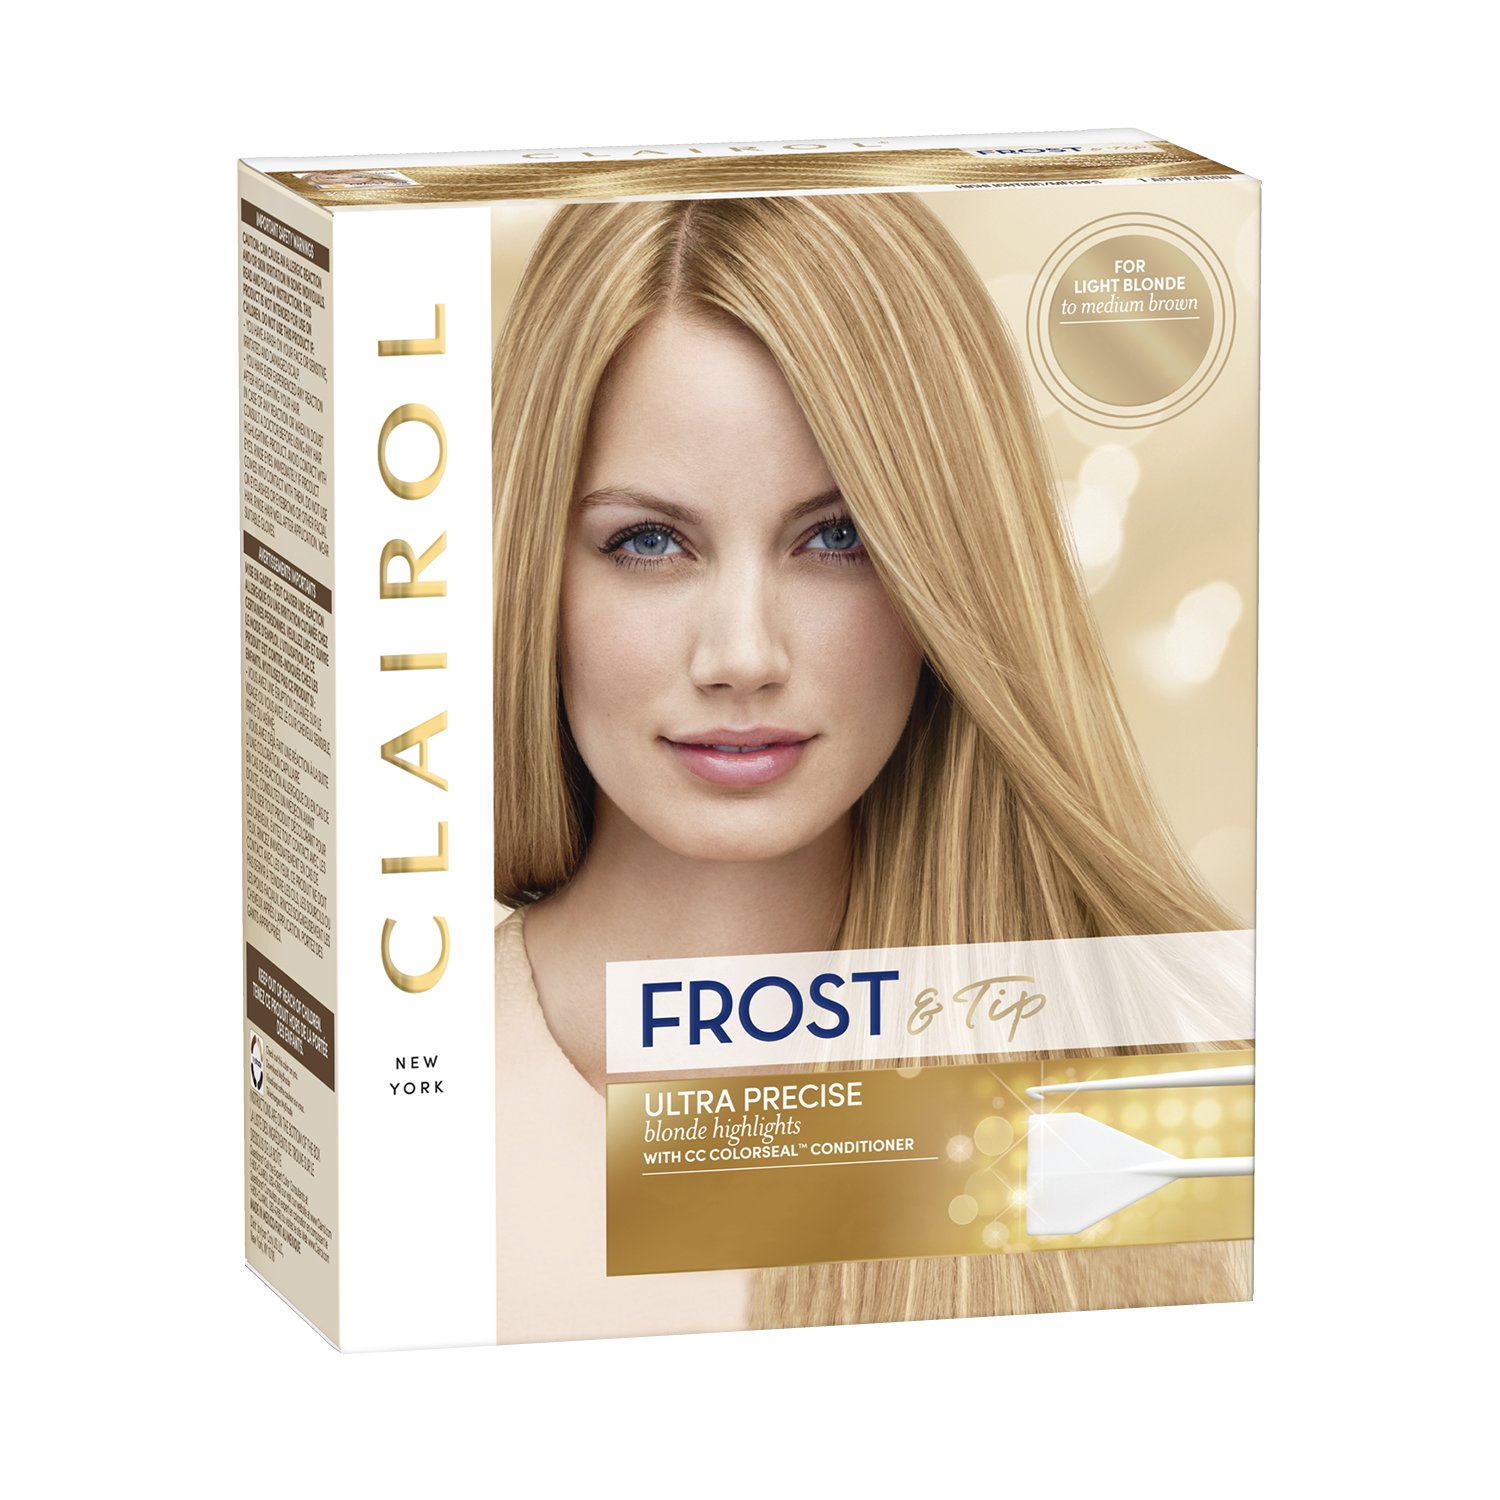 Clairol - Frost & Tip Original Hair Highlighting Kit Coty